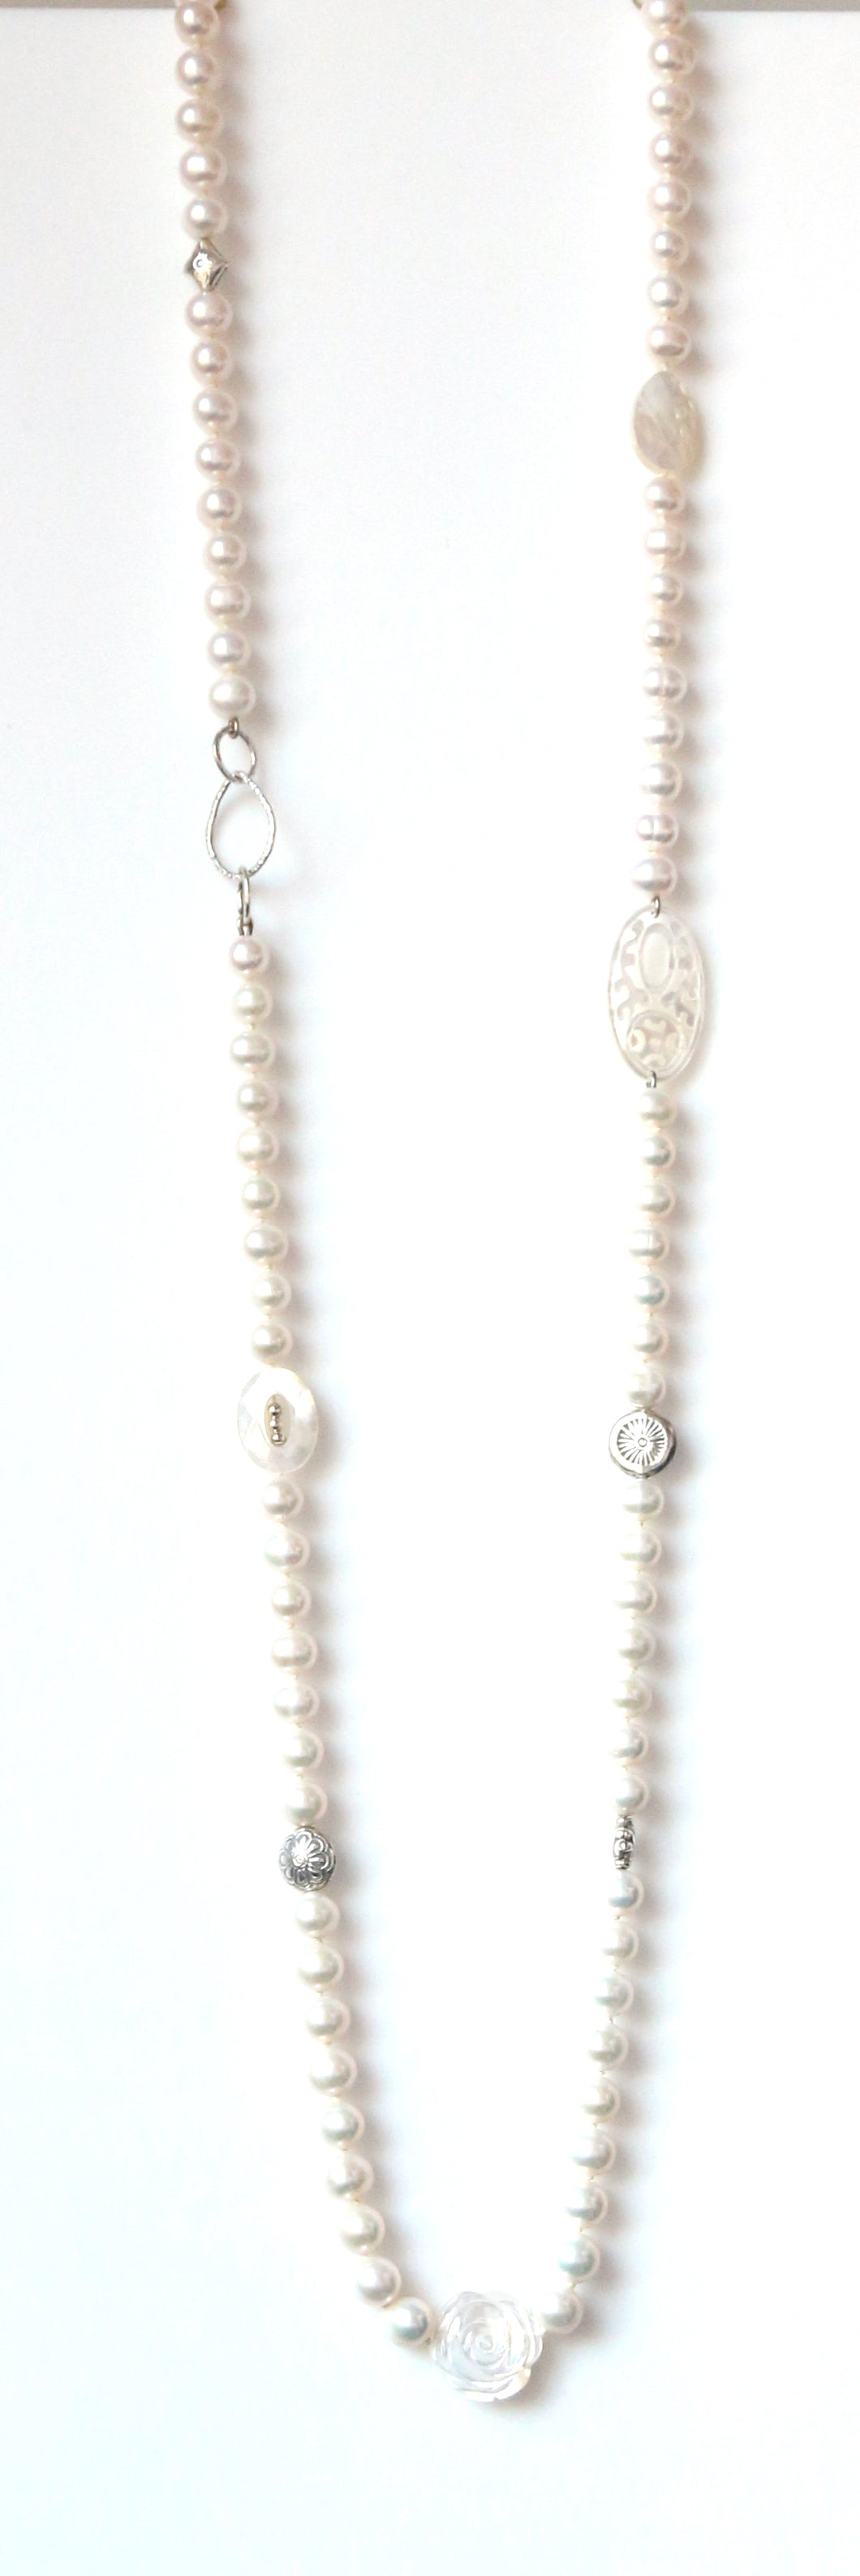 Australian Handmade White Long Necklace with Pearls Mother of Pearl and Sterling Silver features